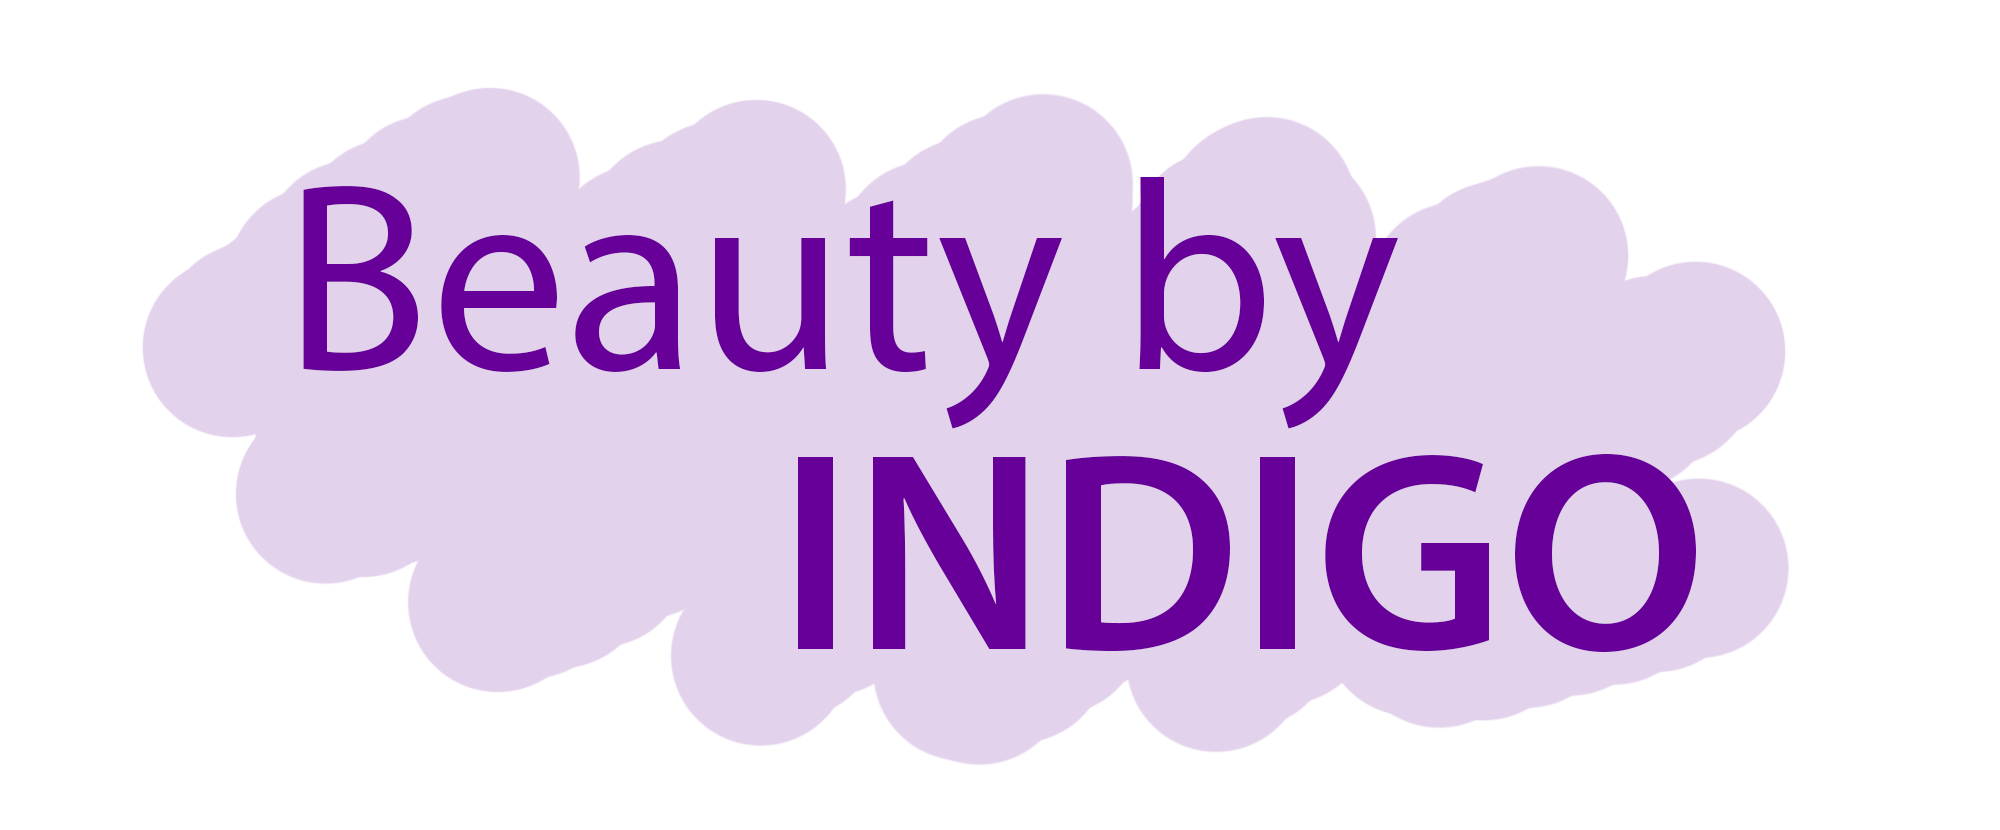 Beauty by Indigo